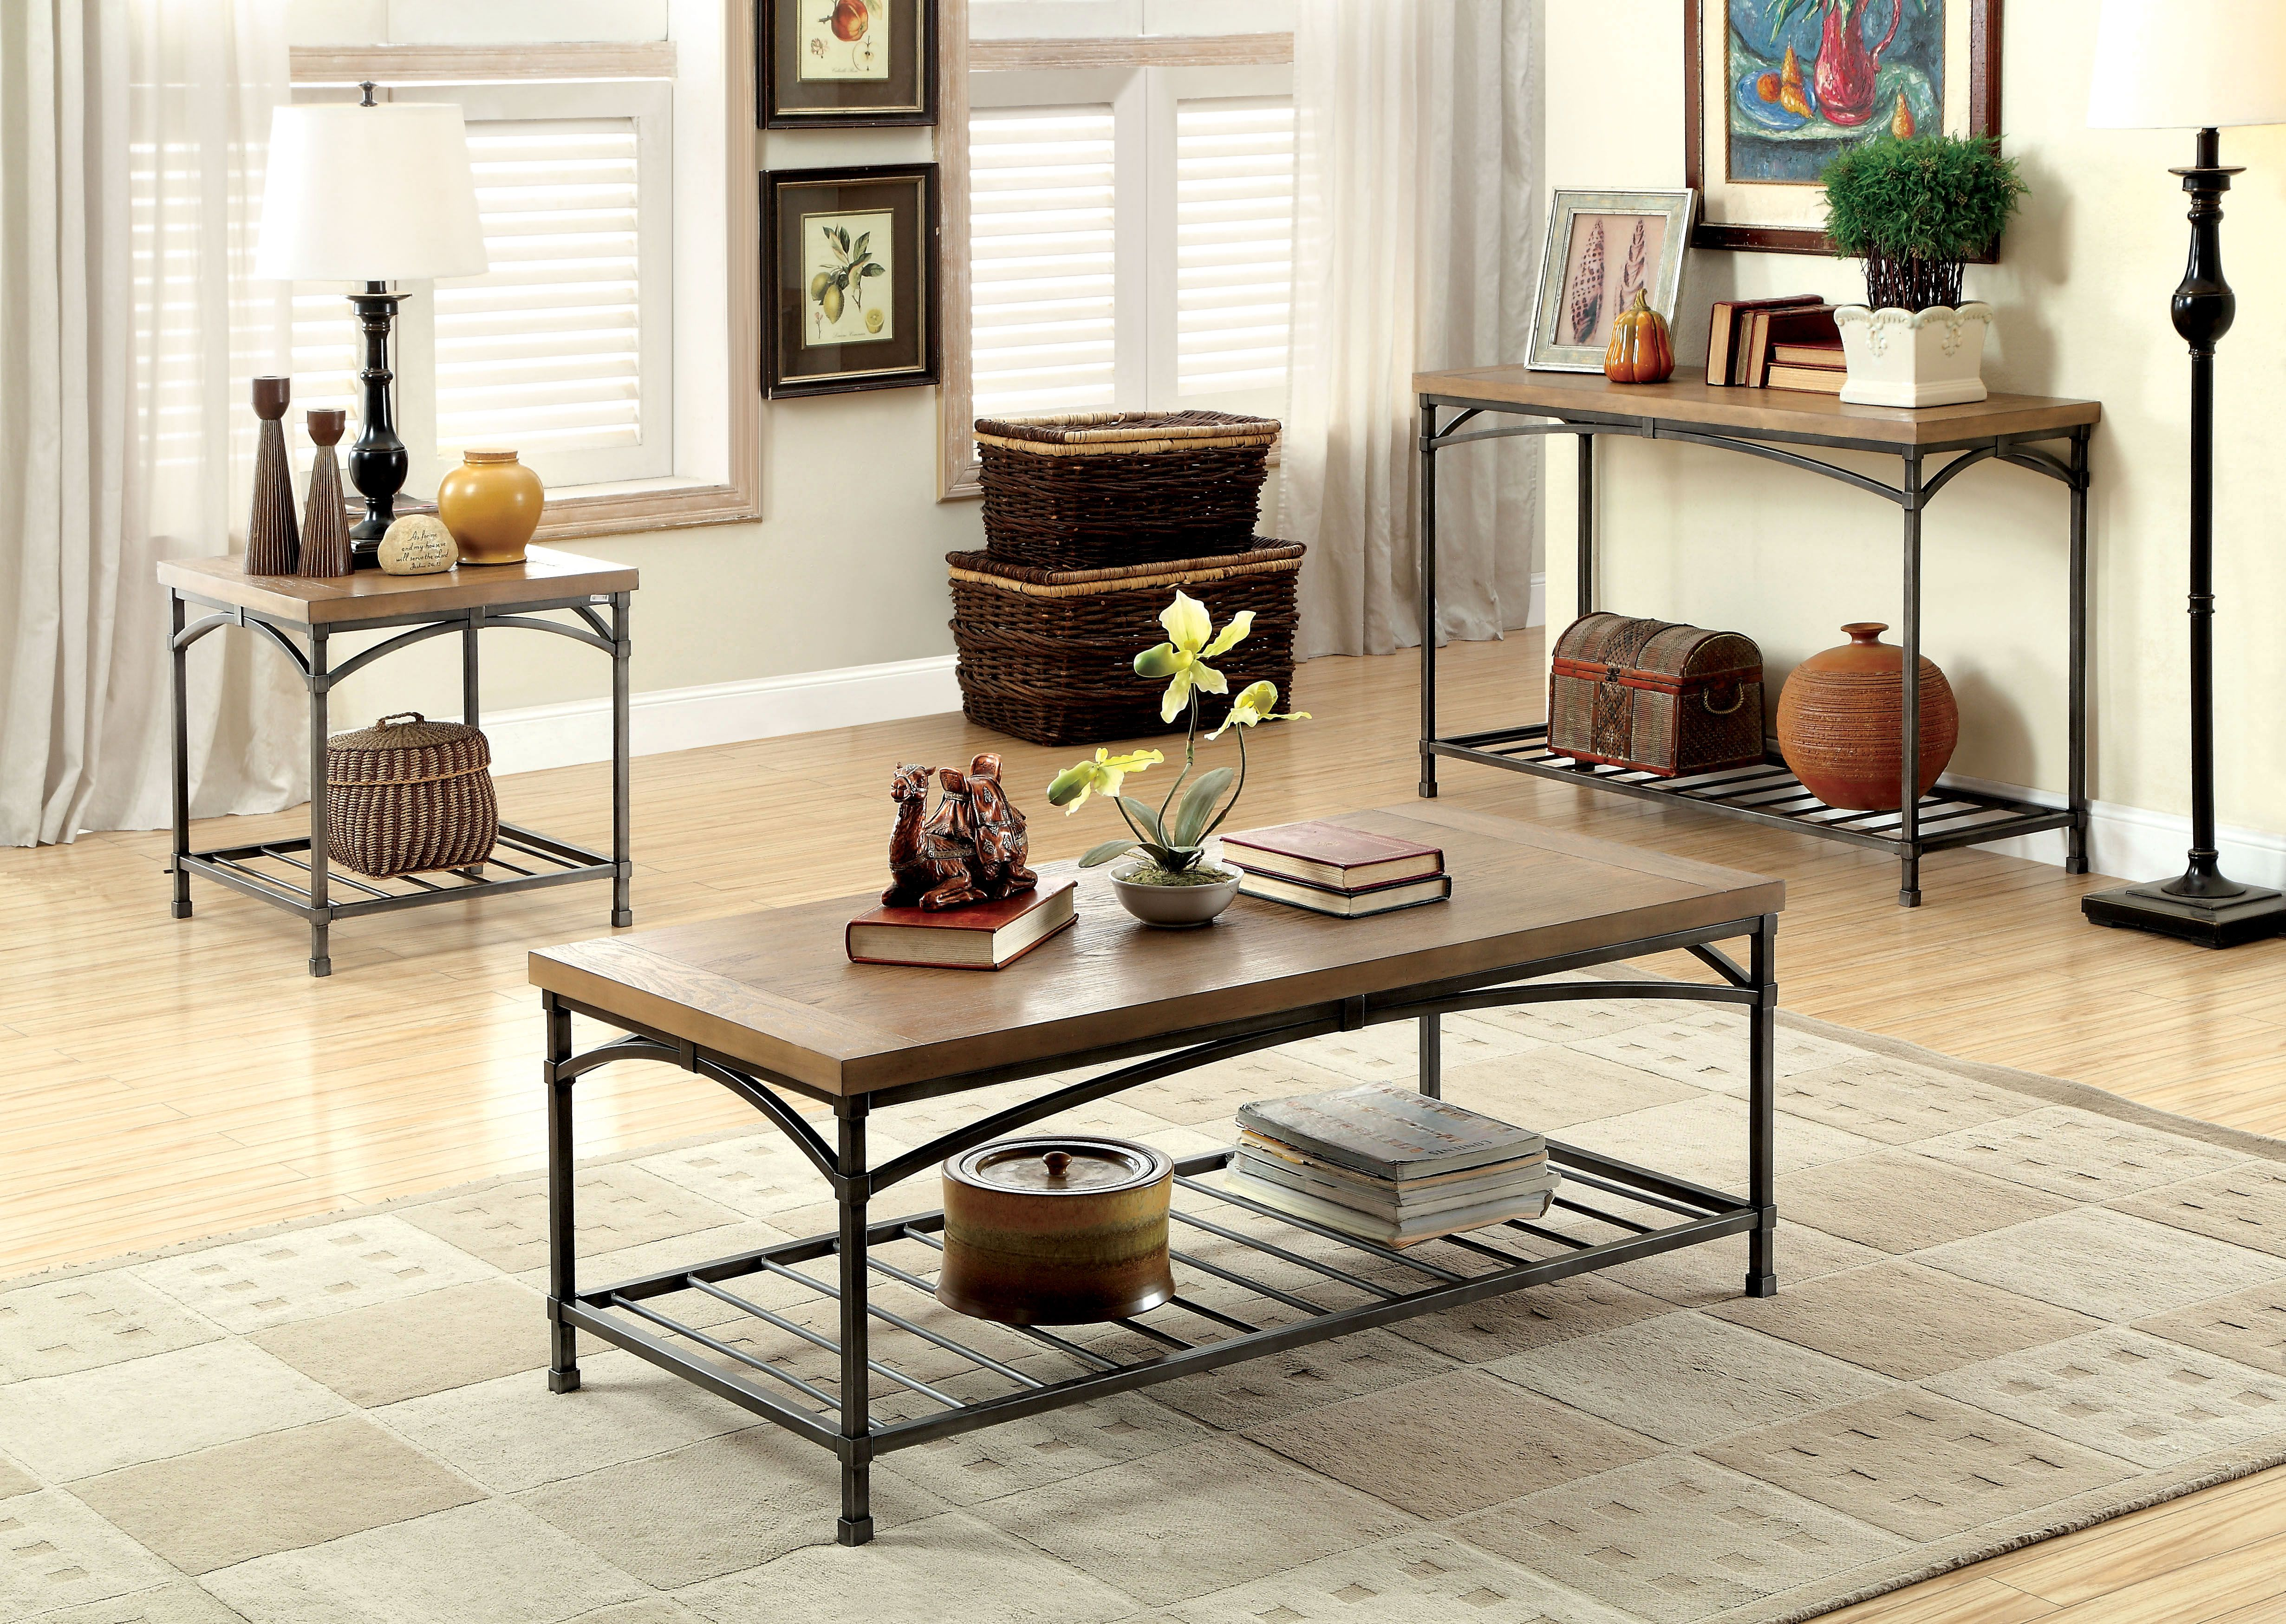 Furniture Of America Chrome Exia Metal 3 Piece Accent Table Set Silver Coffee Table Living Room Coffee Table Oak Coffee Table [ 3498 x 4923 Pixel ]